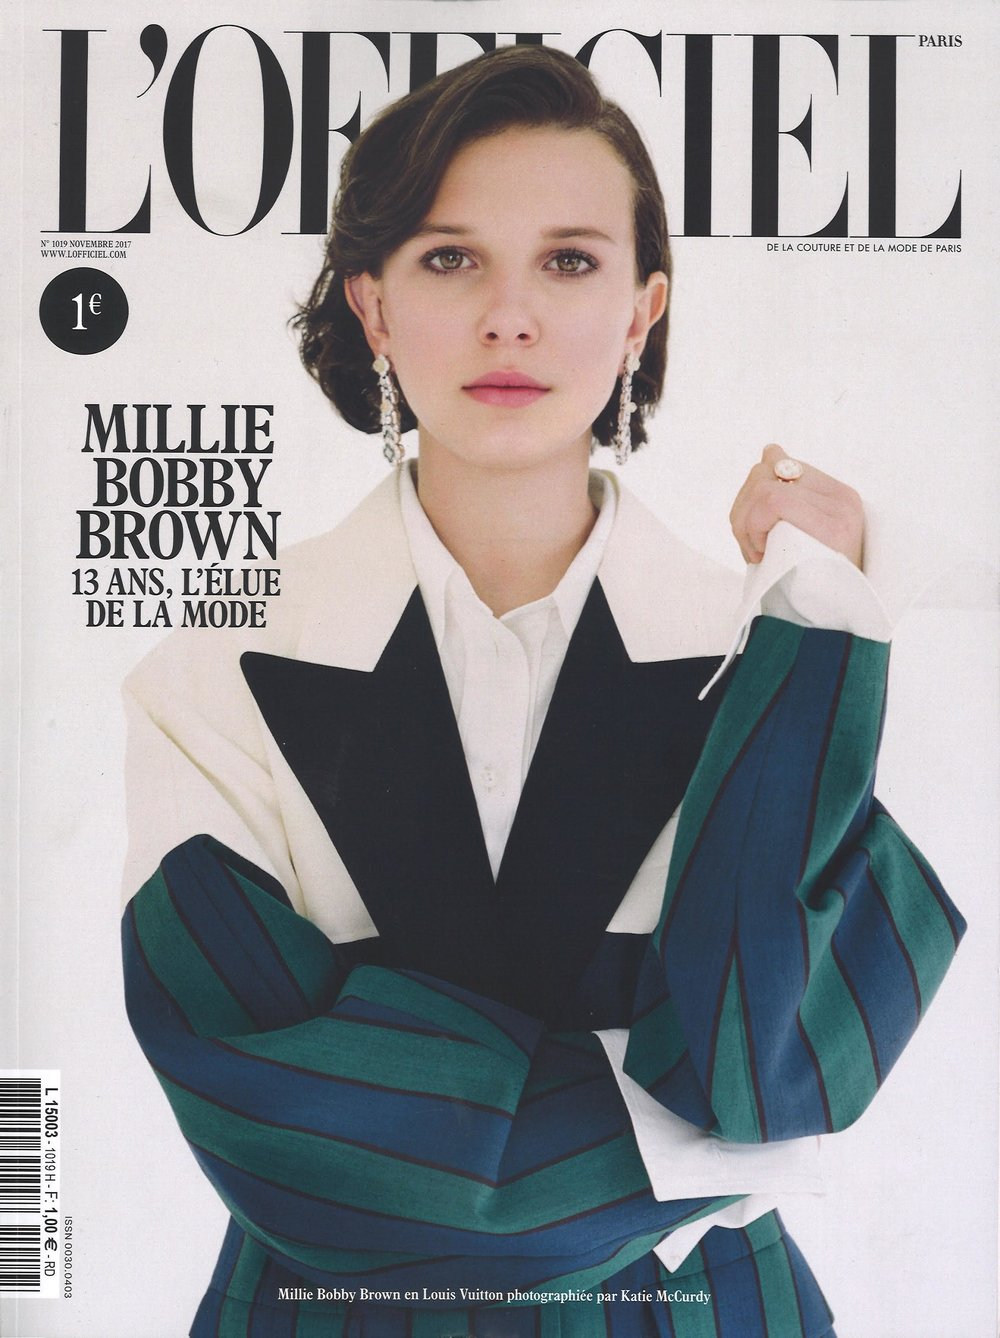 L'Officiel Paris Cover